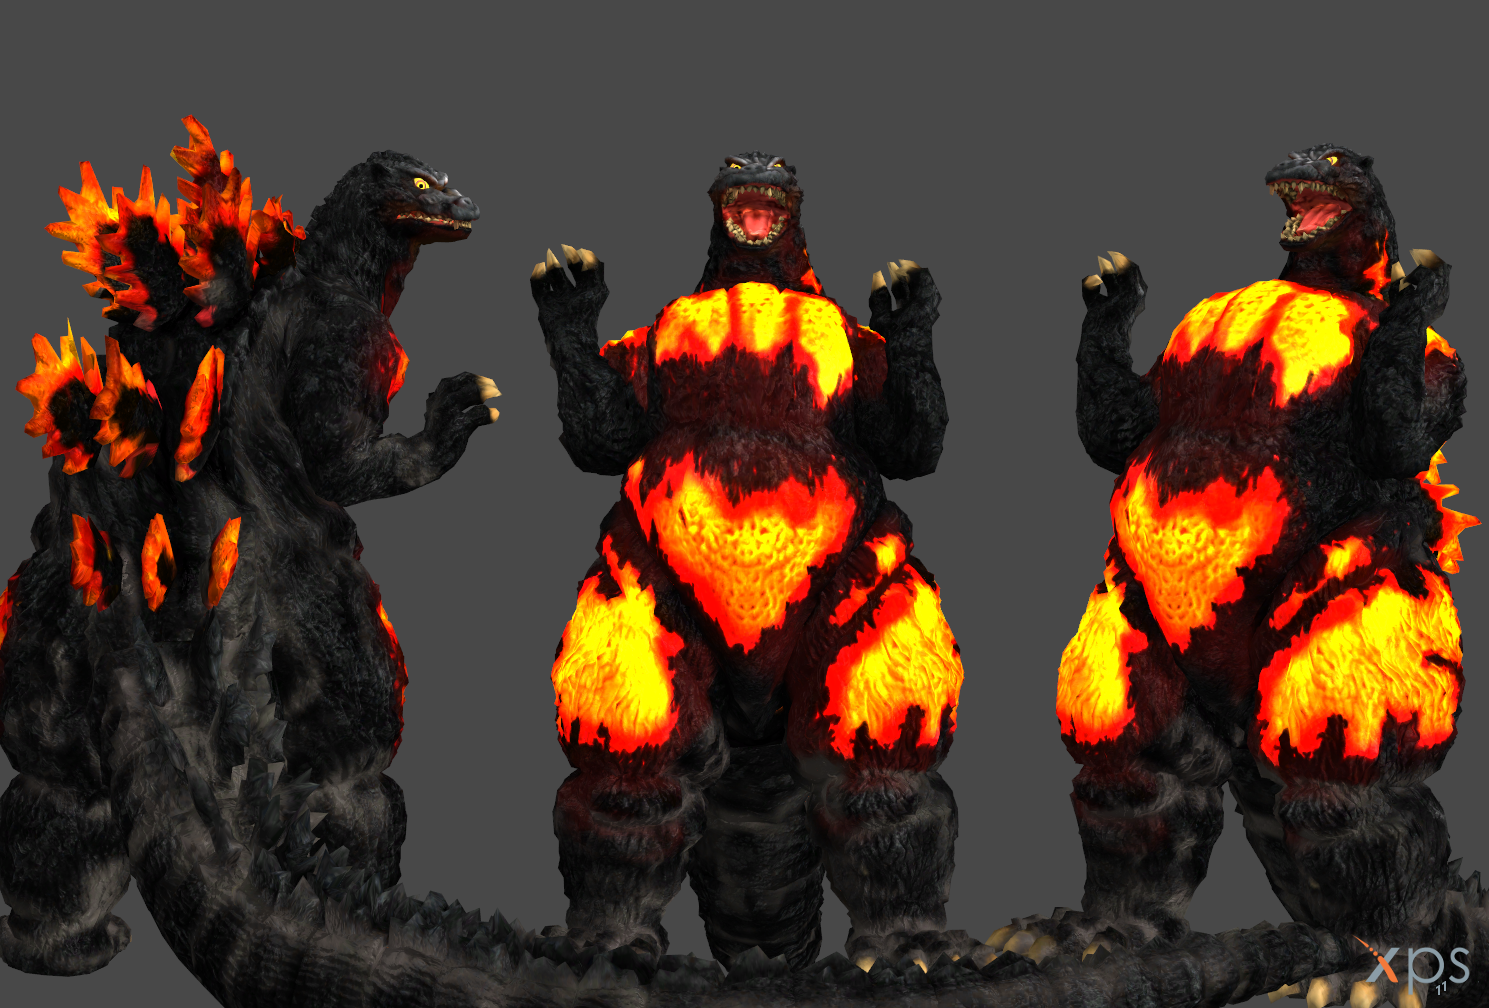 burning godzilla by marcelievsky on deviantart